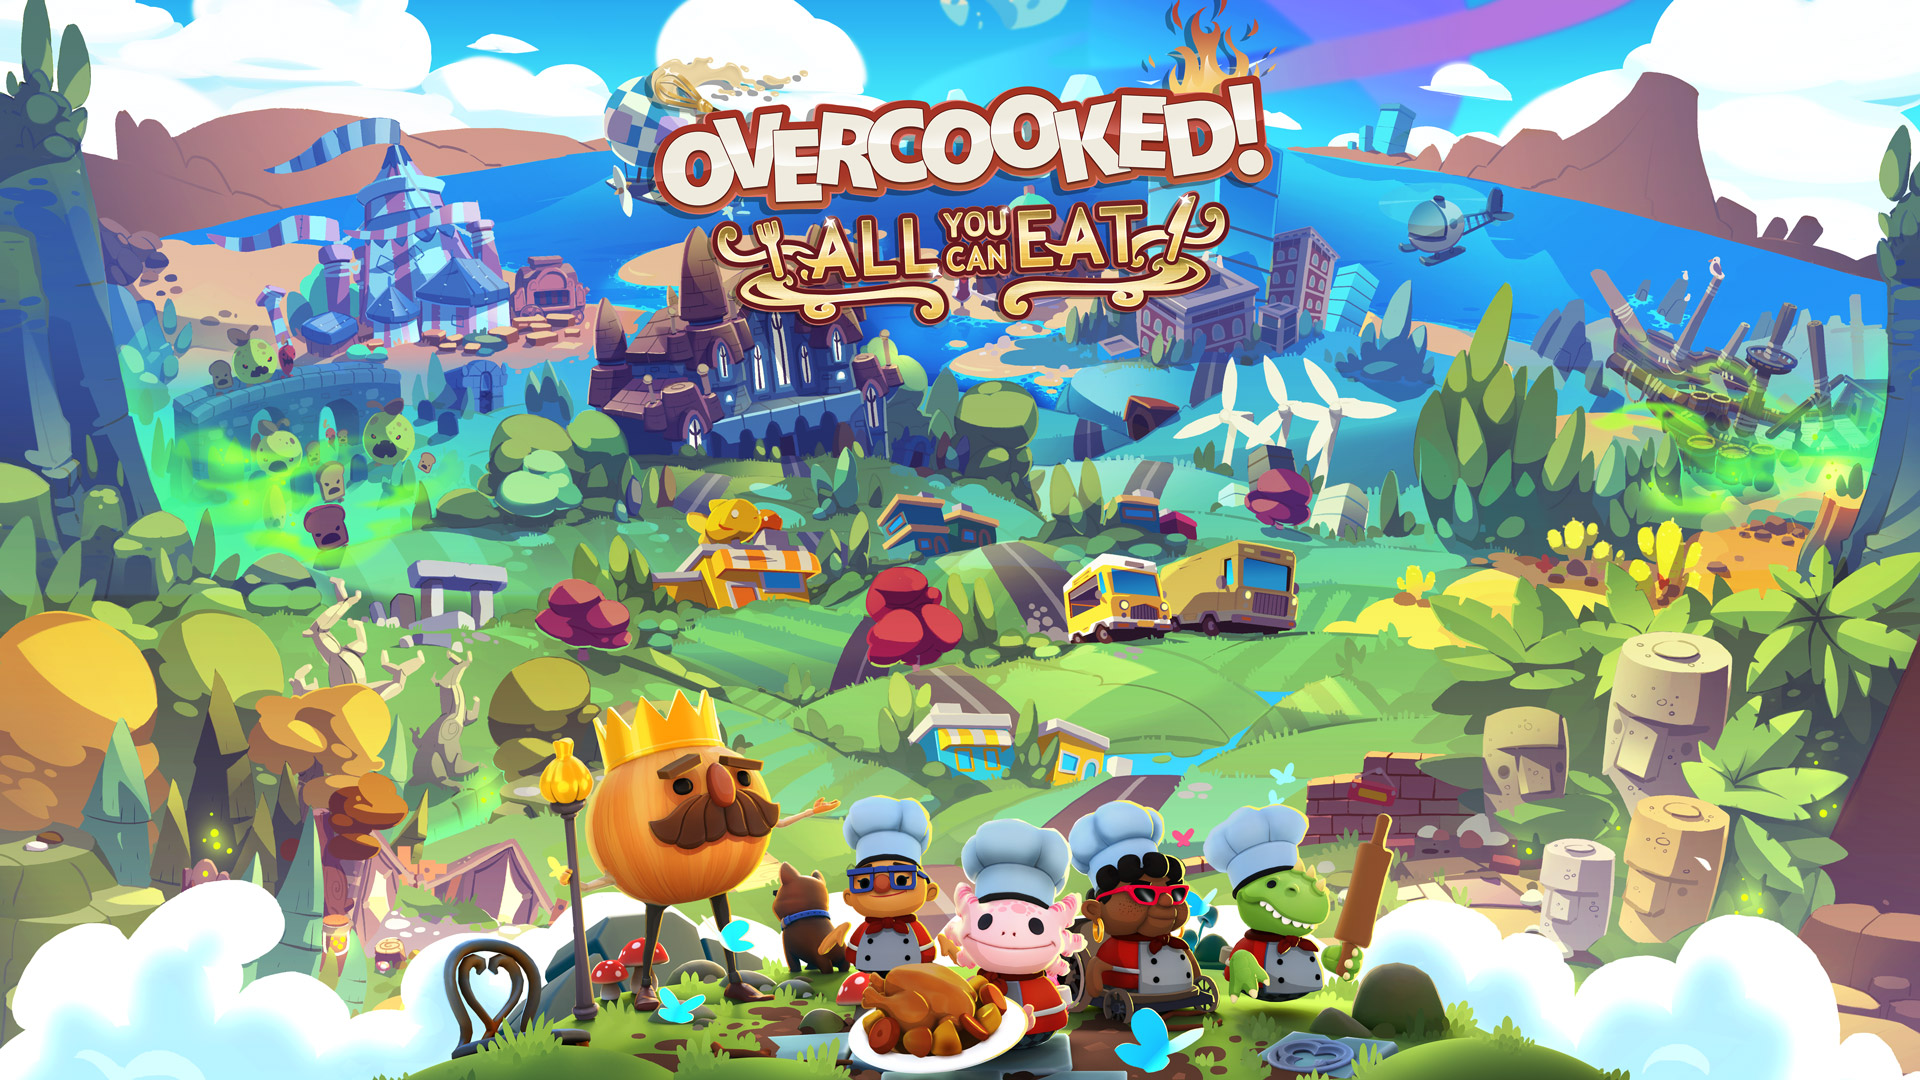 overcooked_ayce_vignette